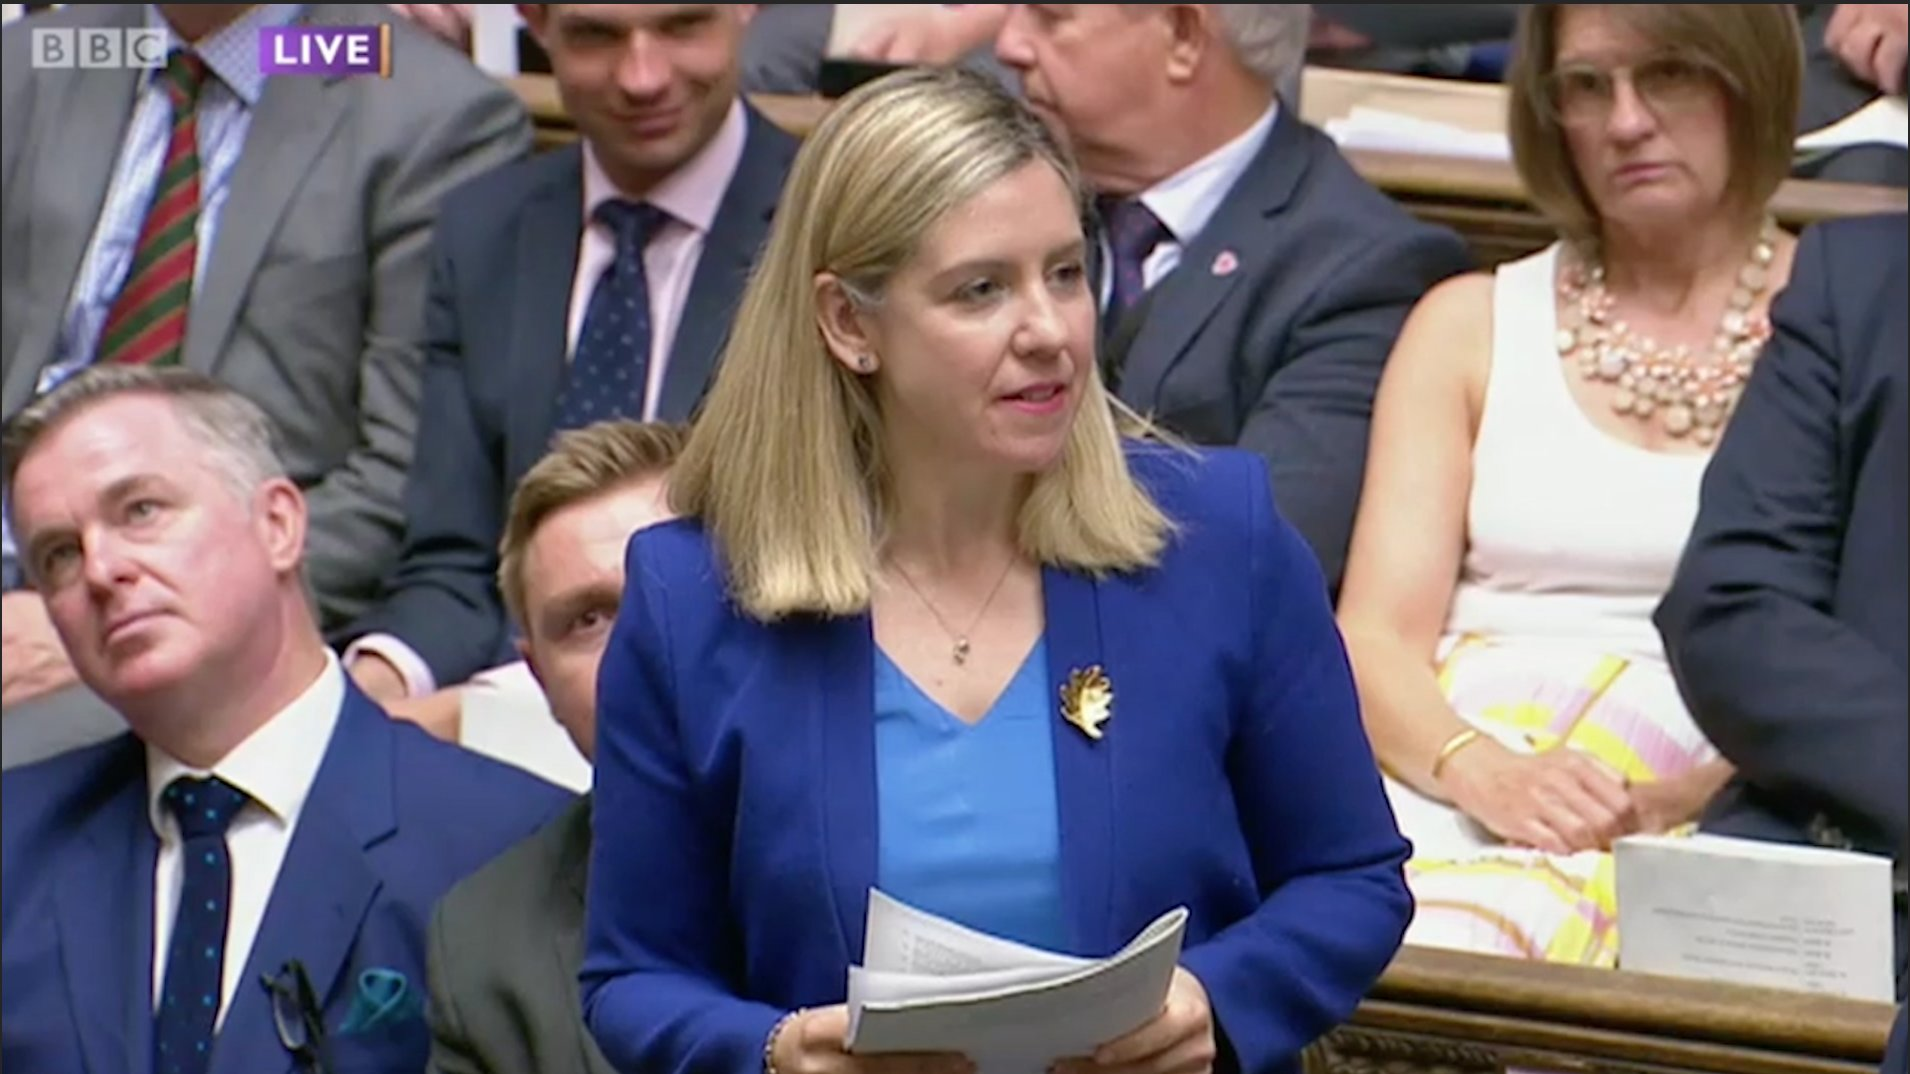 Andrea Jenkyns to @theresa_may: At what point was it decided that Brexit meant Remain? https://t.co/fAyGVM8LLb